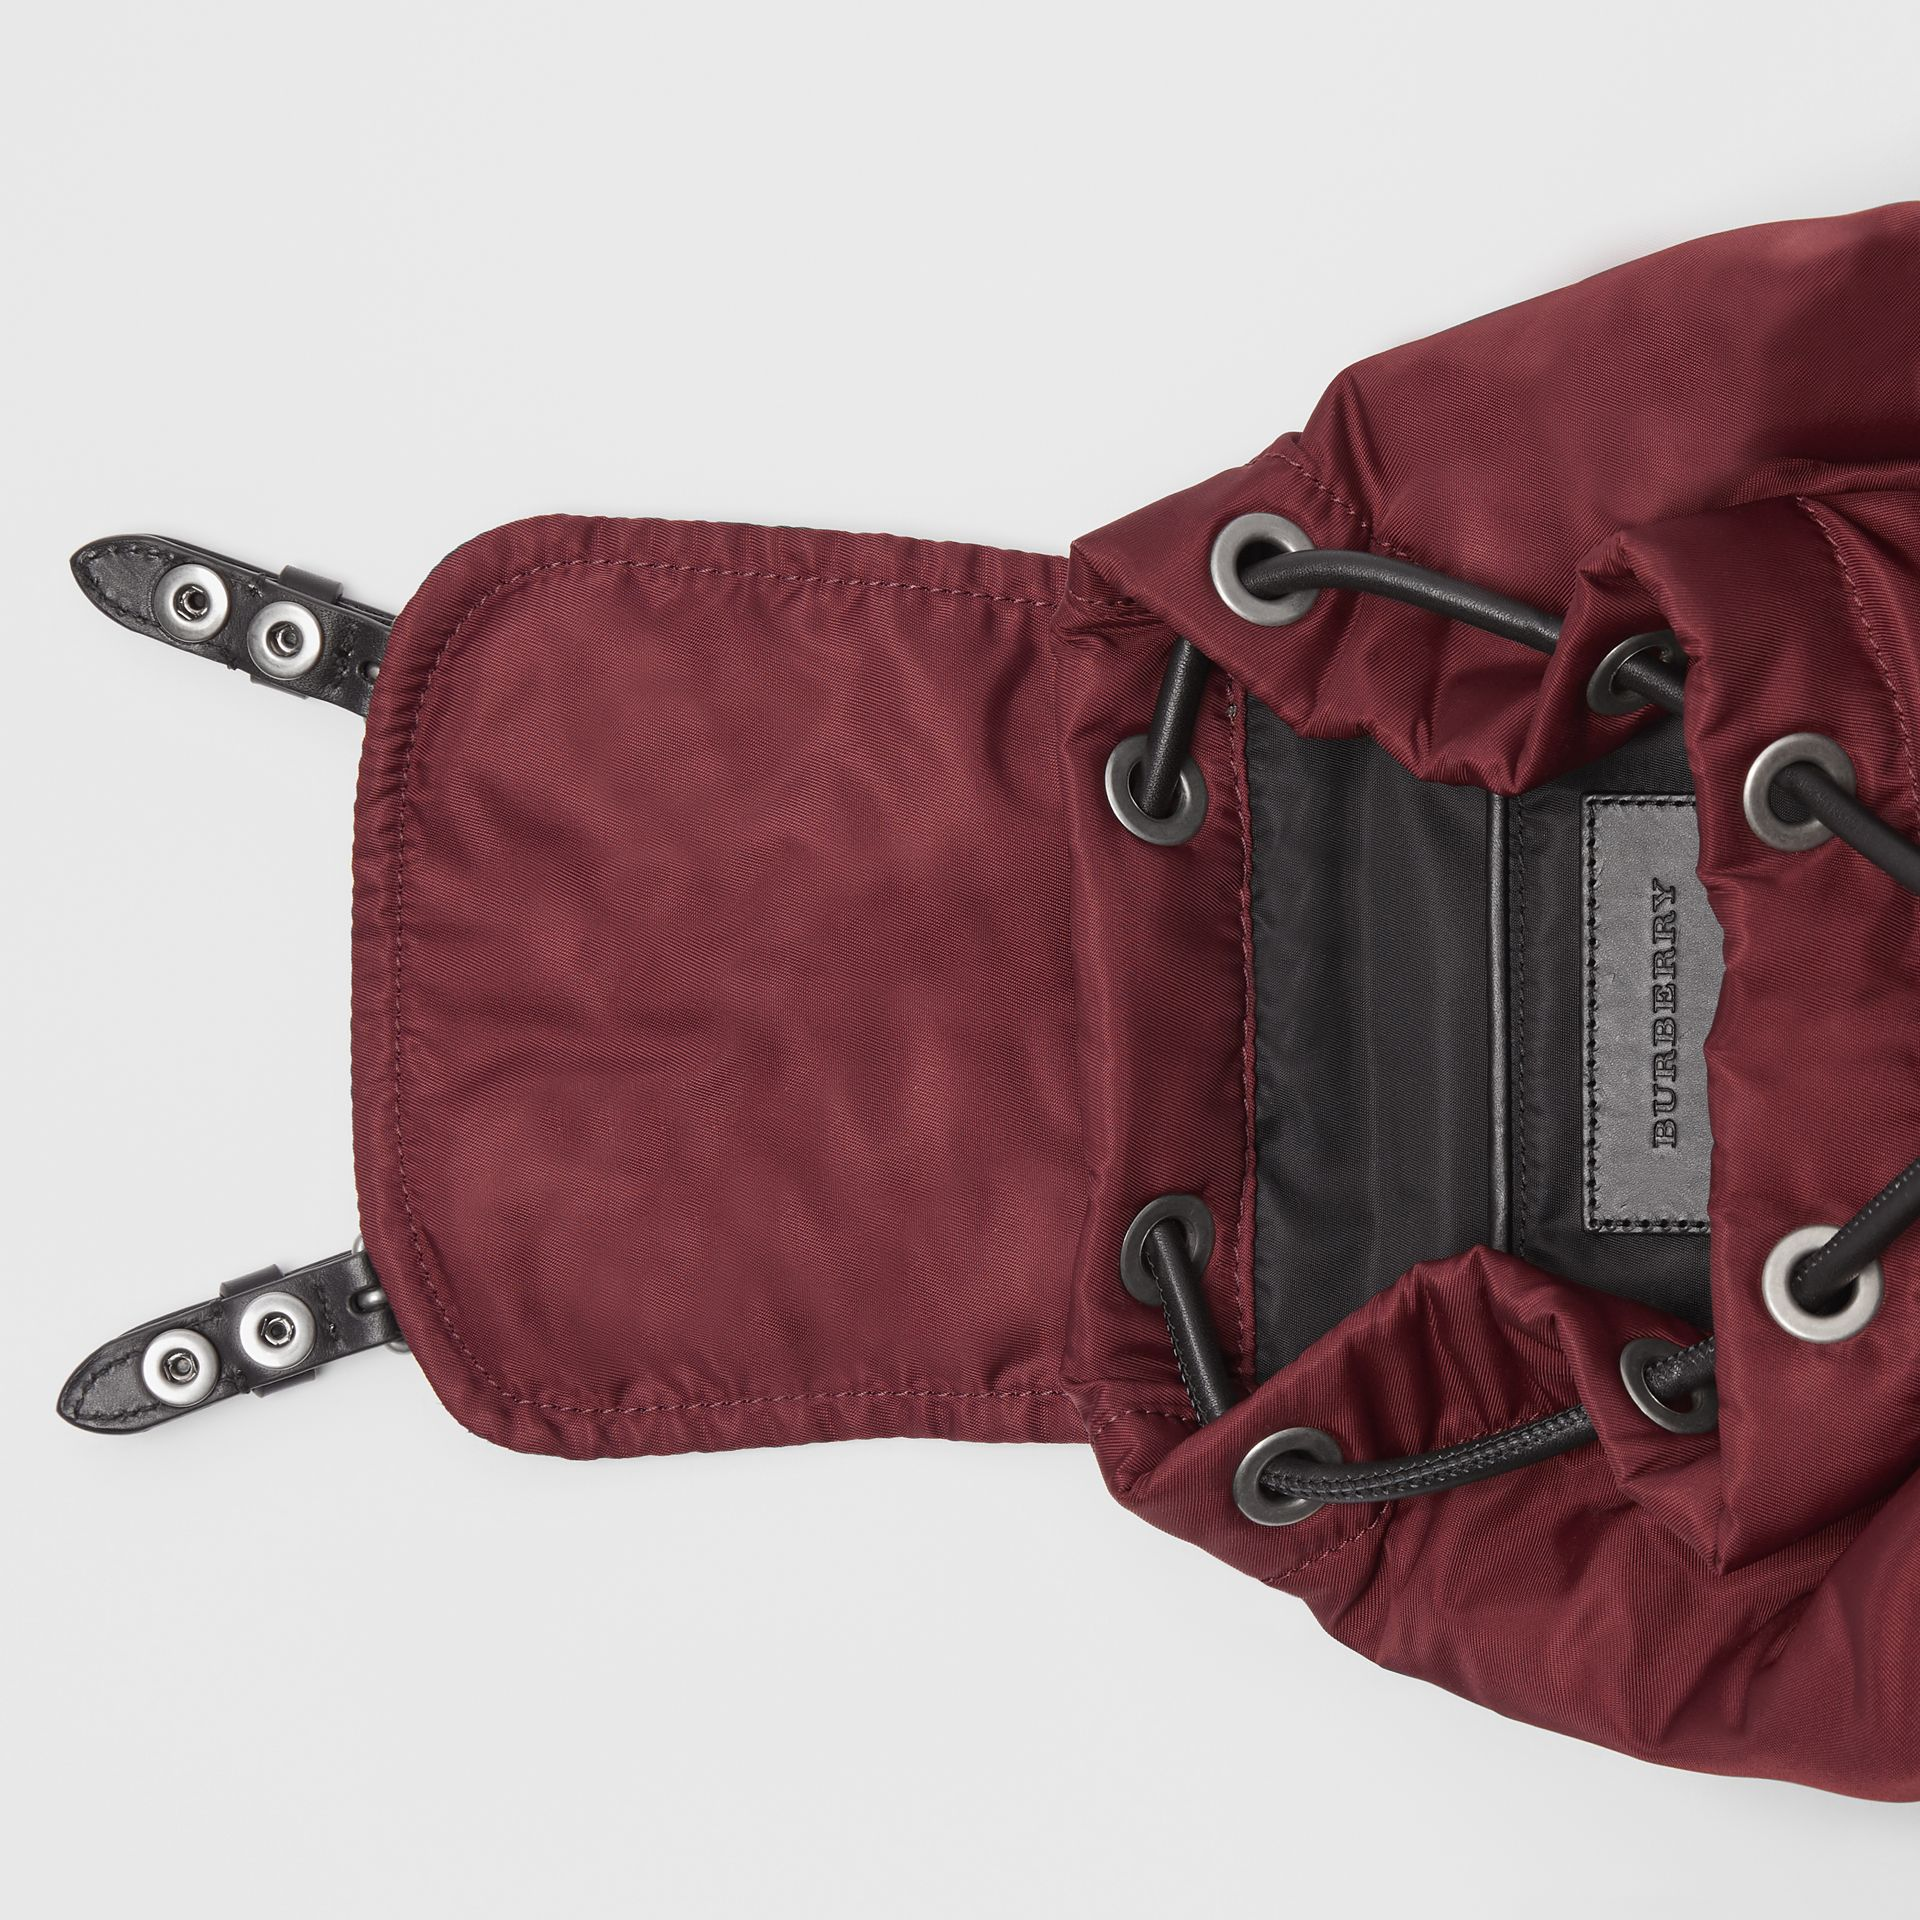 The Small Crossbody Rucksack in Puffer Nylon in Burgundy Red - Women | Burberry - gallery image 3